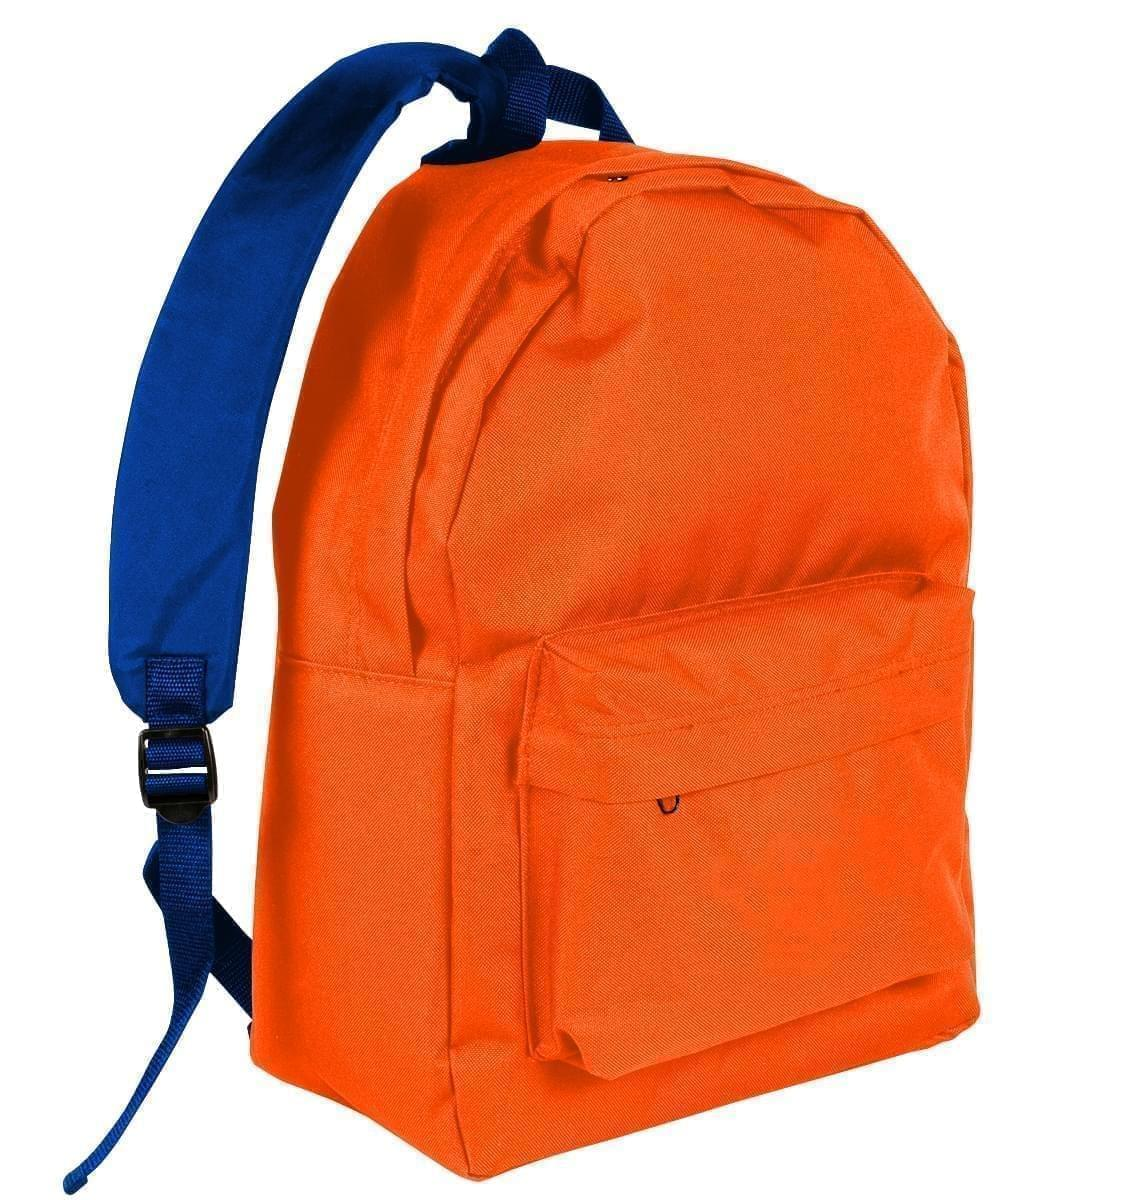 USA Made Nylon Poly Backpack Knapsacks, Orange-Royal Blue, 8960-AX3